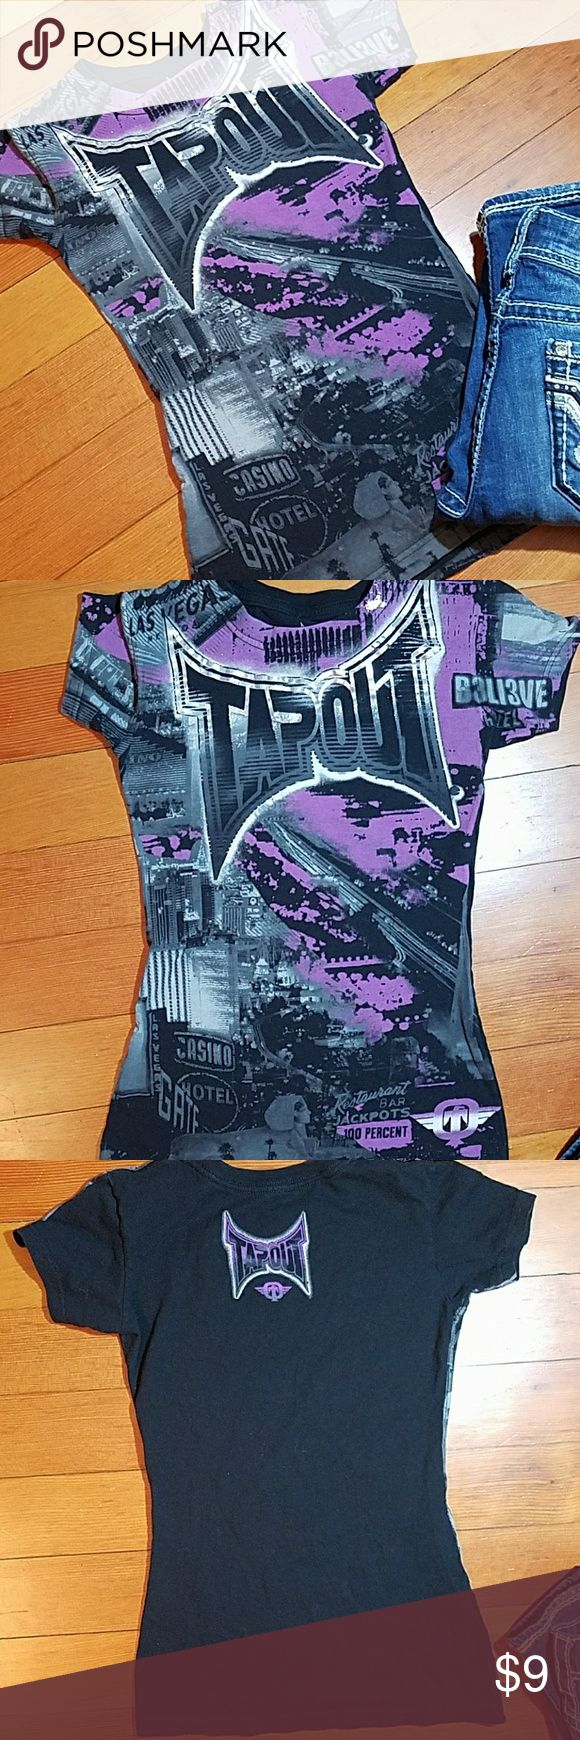 🌸5 for $25!🌸Tapout tee Tapout logo is metallic silver, purple designs throughout. Tag says small but this is an XXS/XS womens in my opinion. Tapout Tops Tees - Short Sleeve